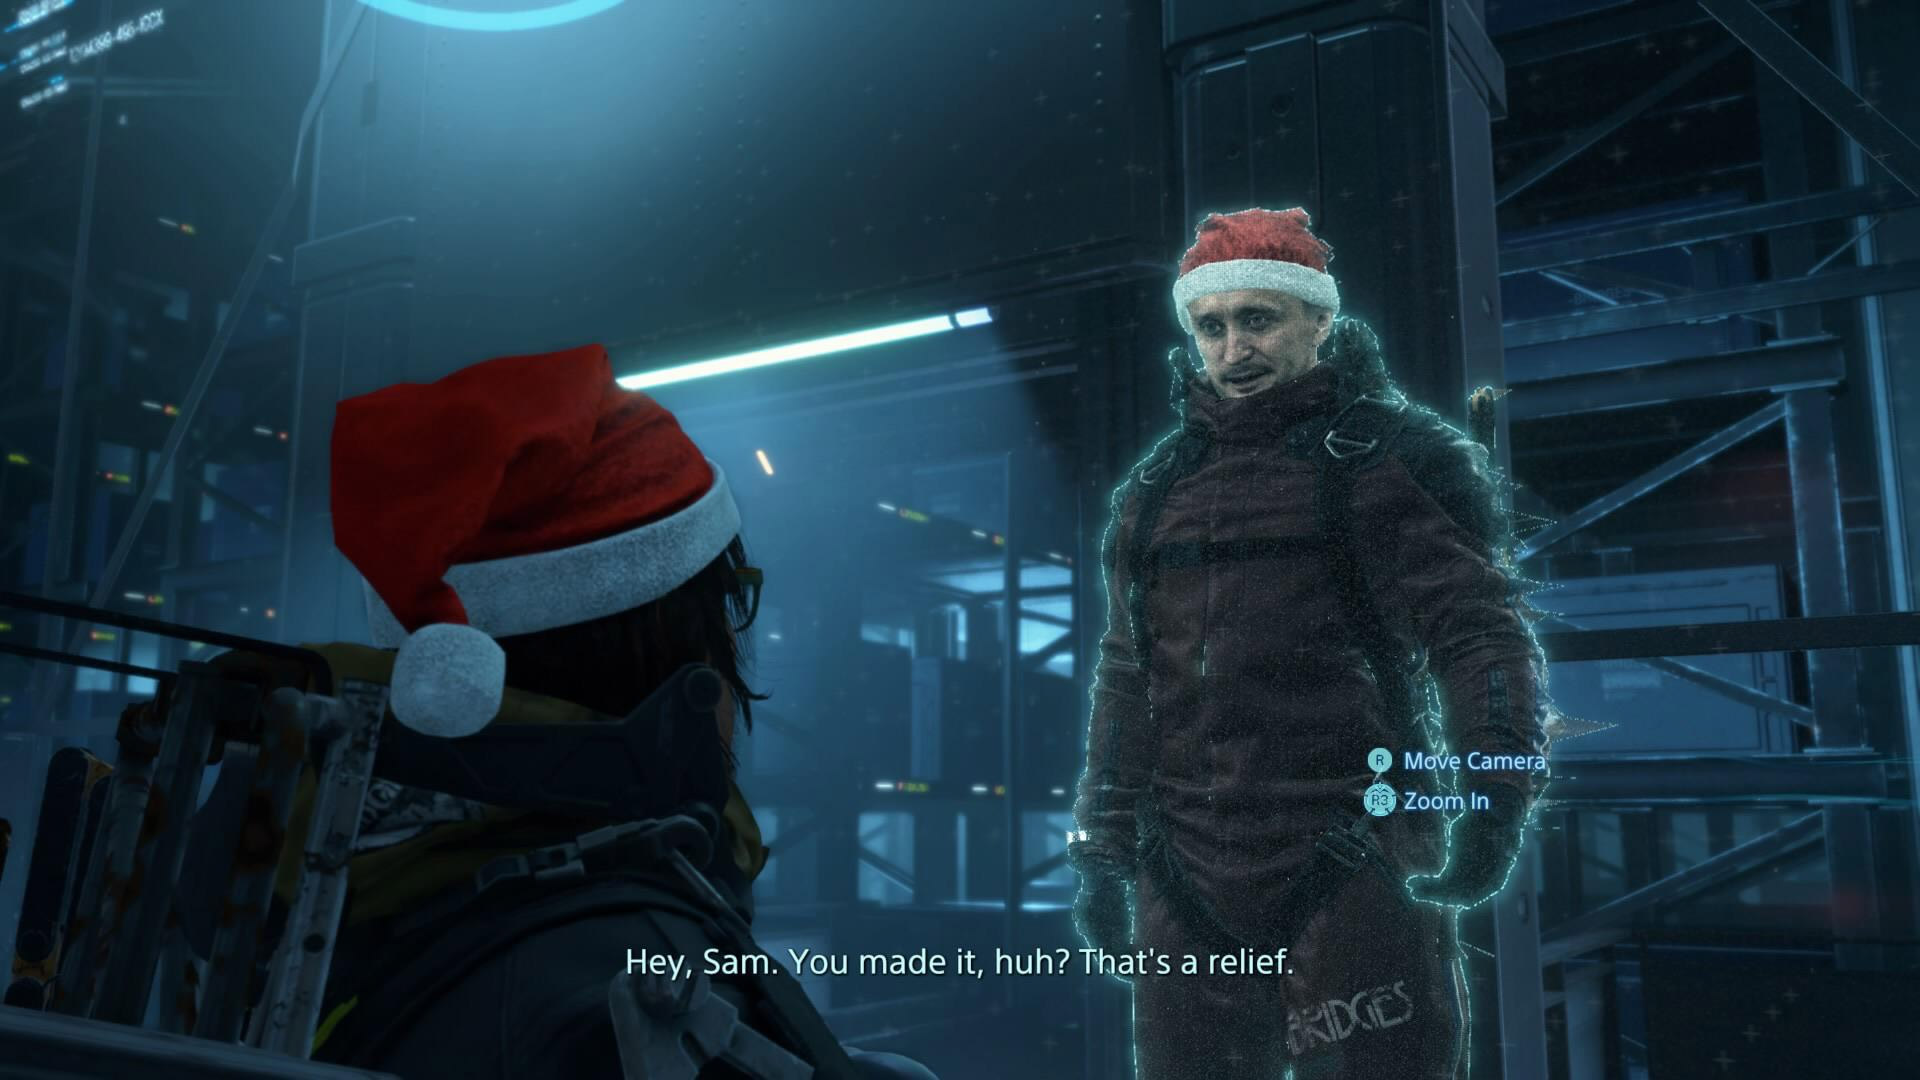 Santa hats are popping up in Death Stranding